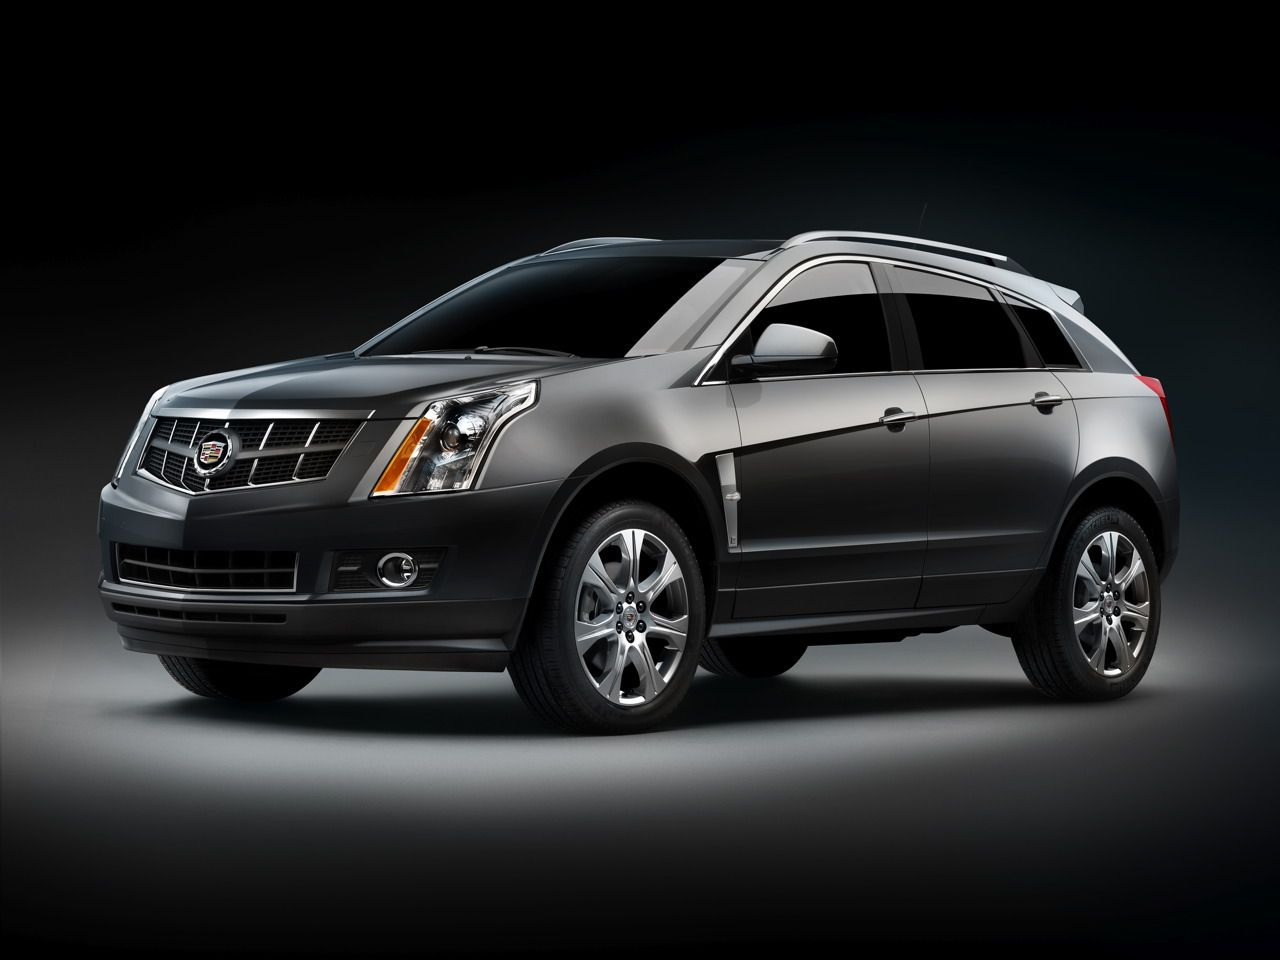 I Want One Vehicles Crossover Cars Cadillac Escalade Top